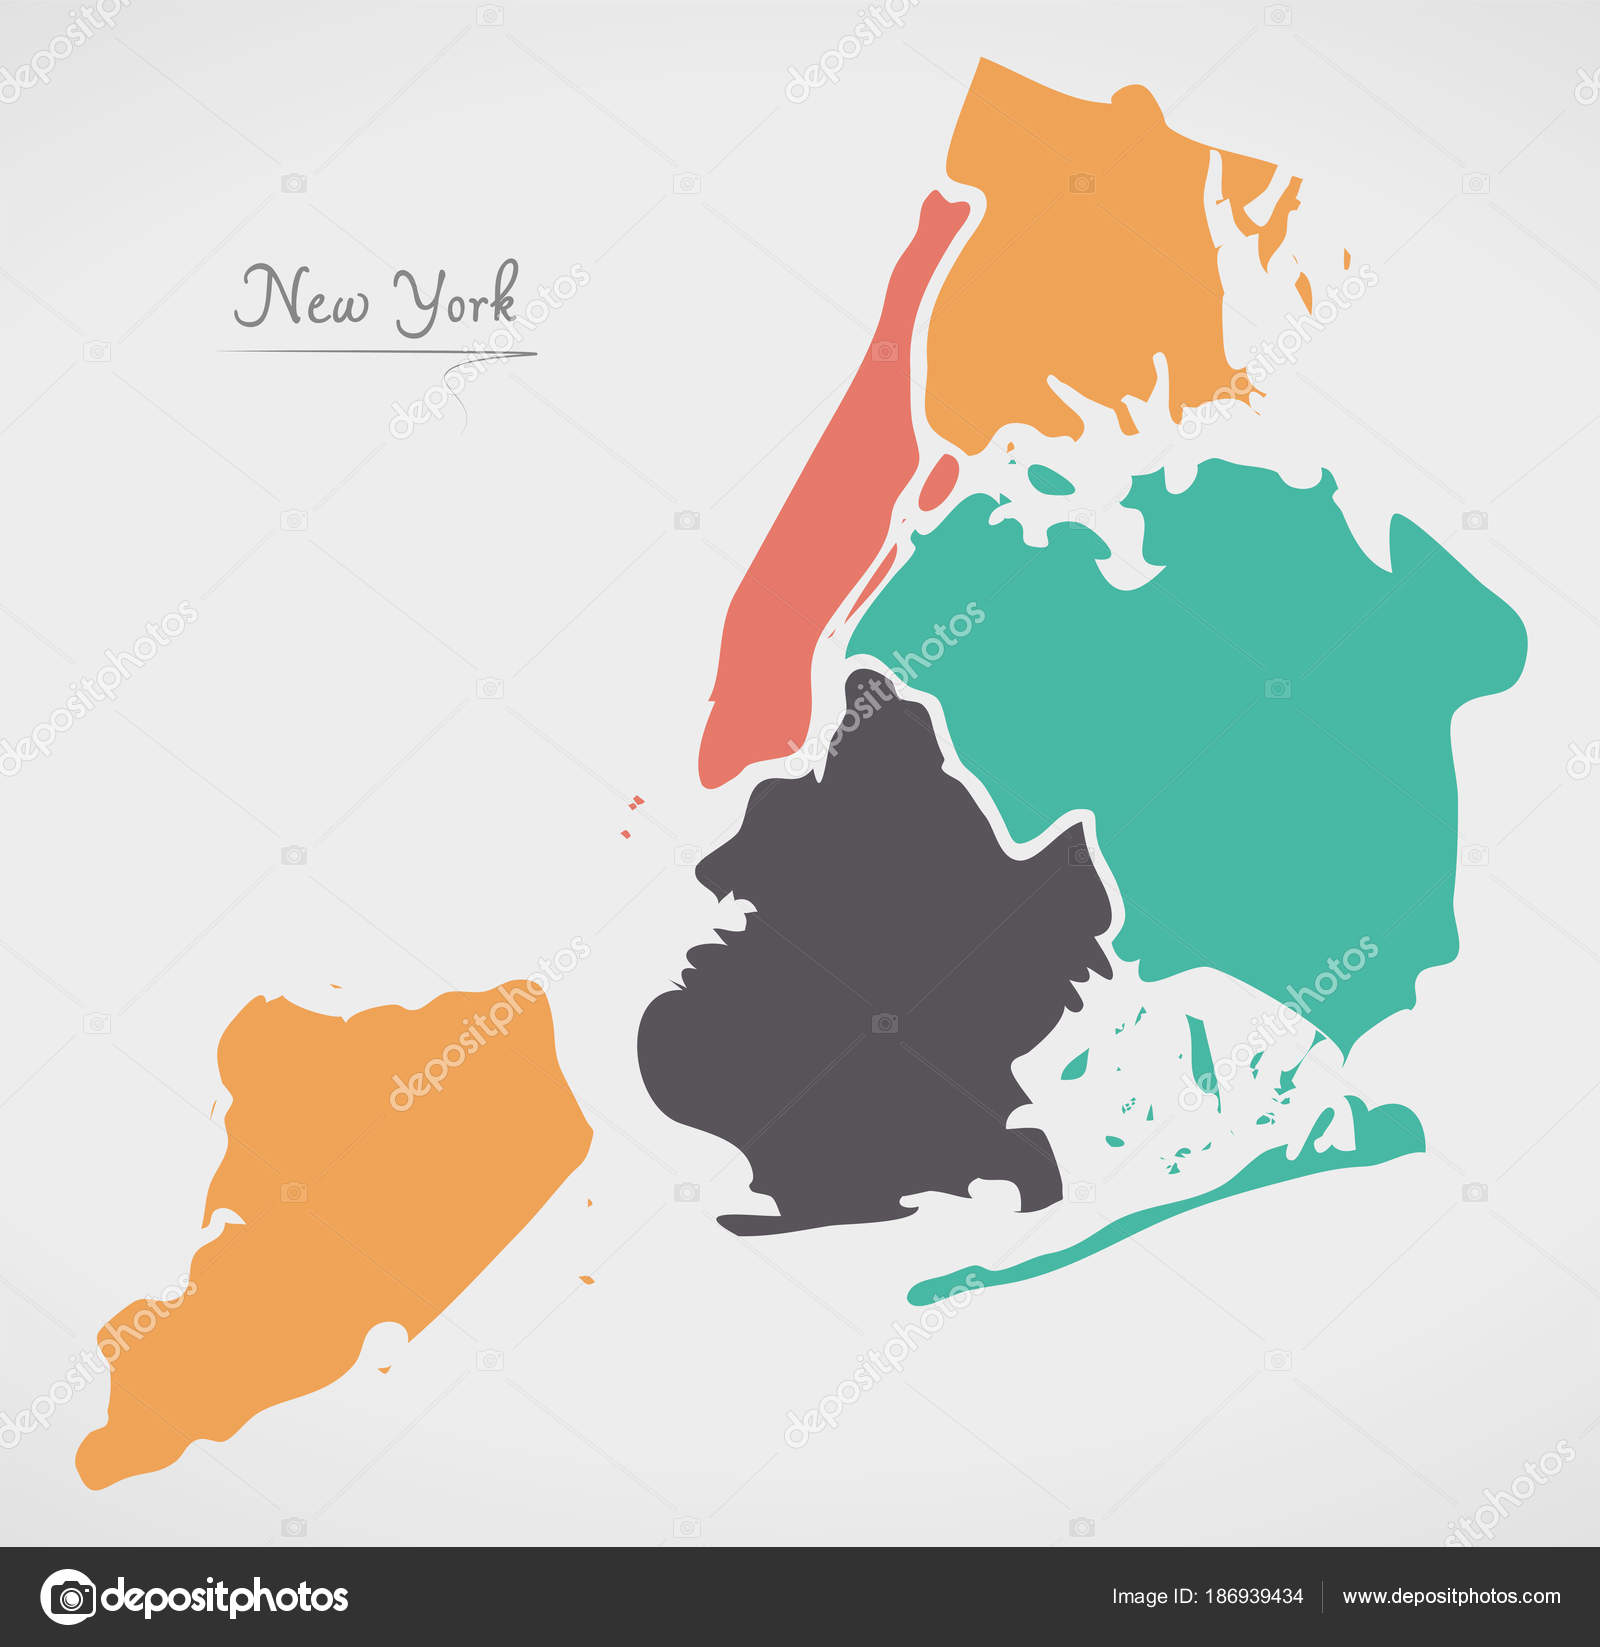 New York Map Boroughs.New York Map With Boroughs And Modern Round Shapes Stock Vector